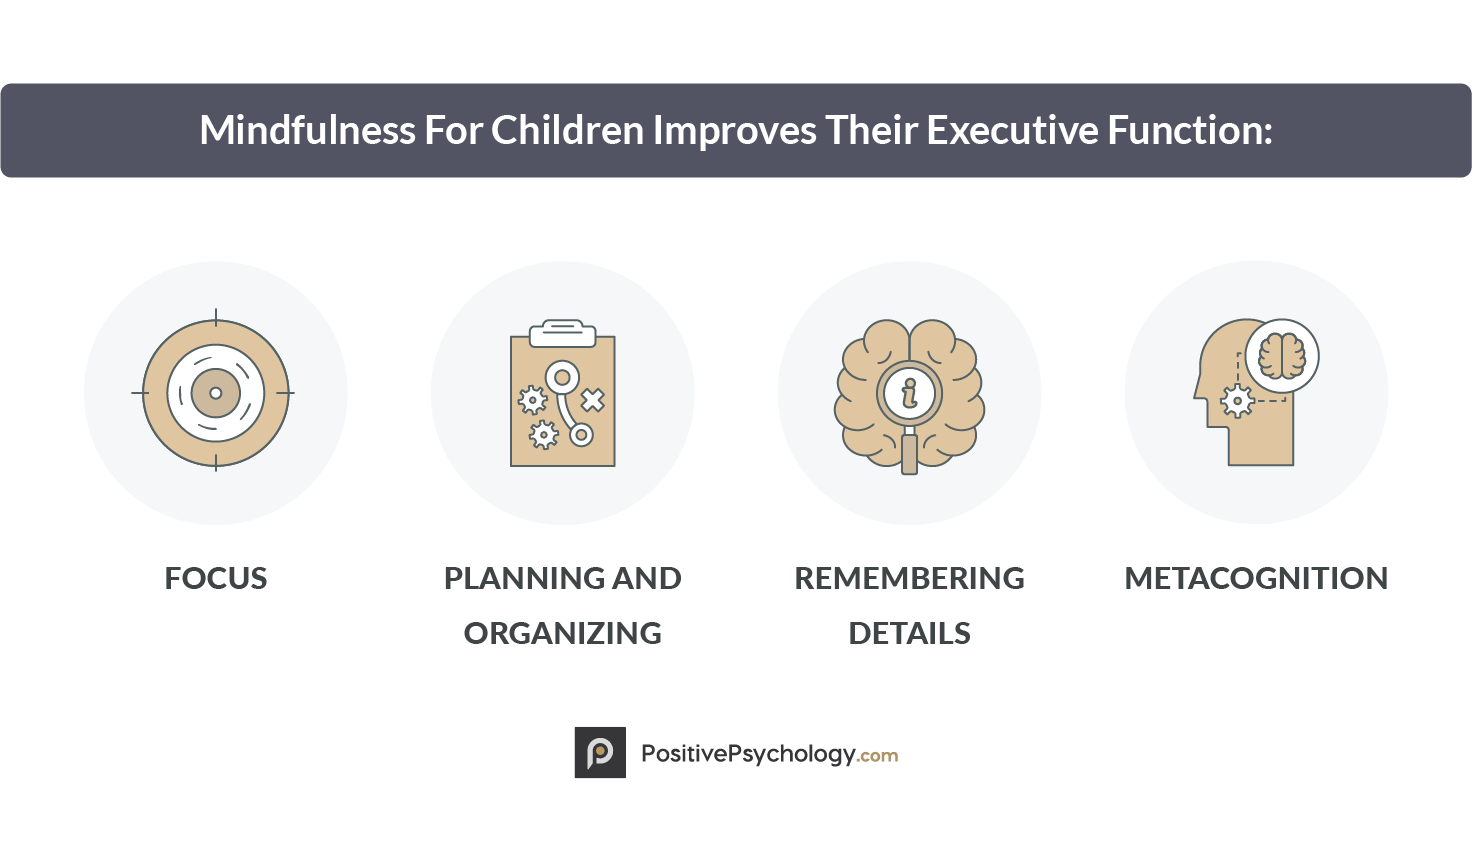 Mindfulness For Children Improves Their Executive Function